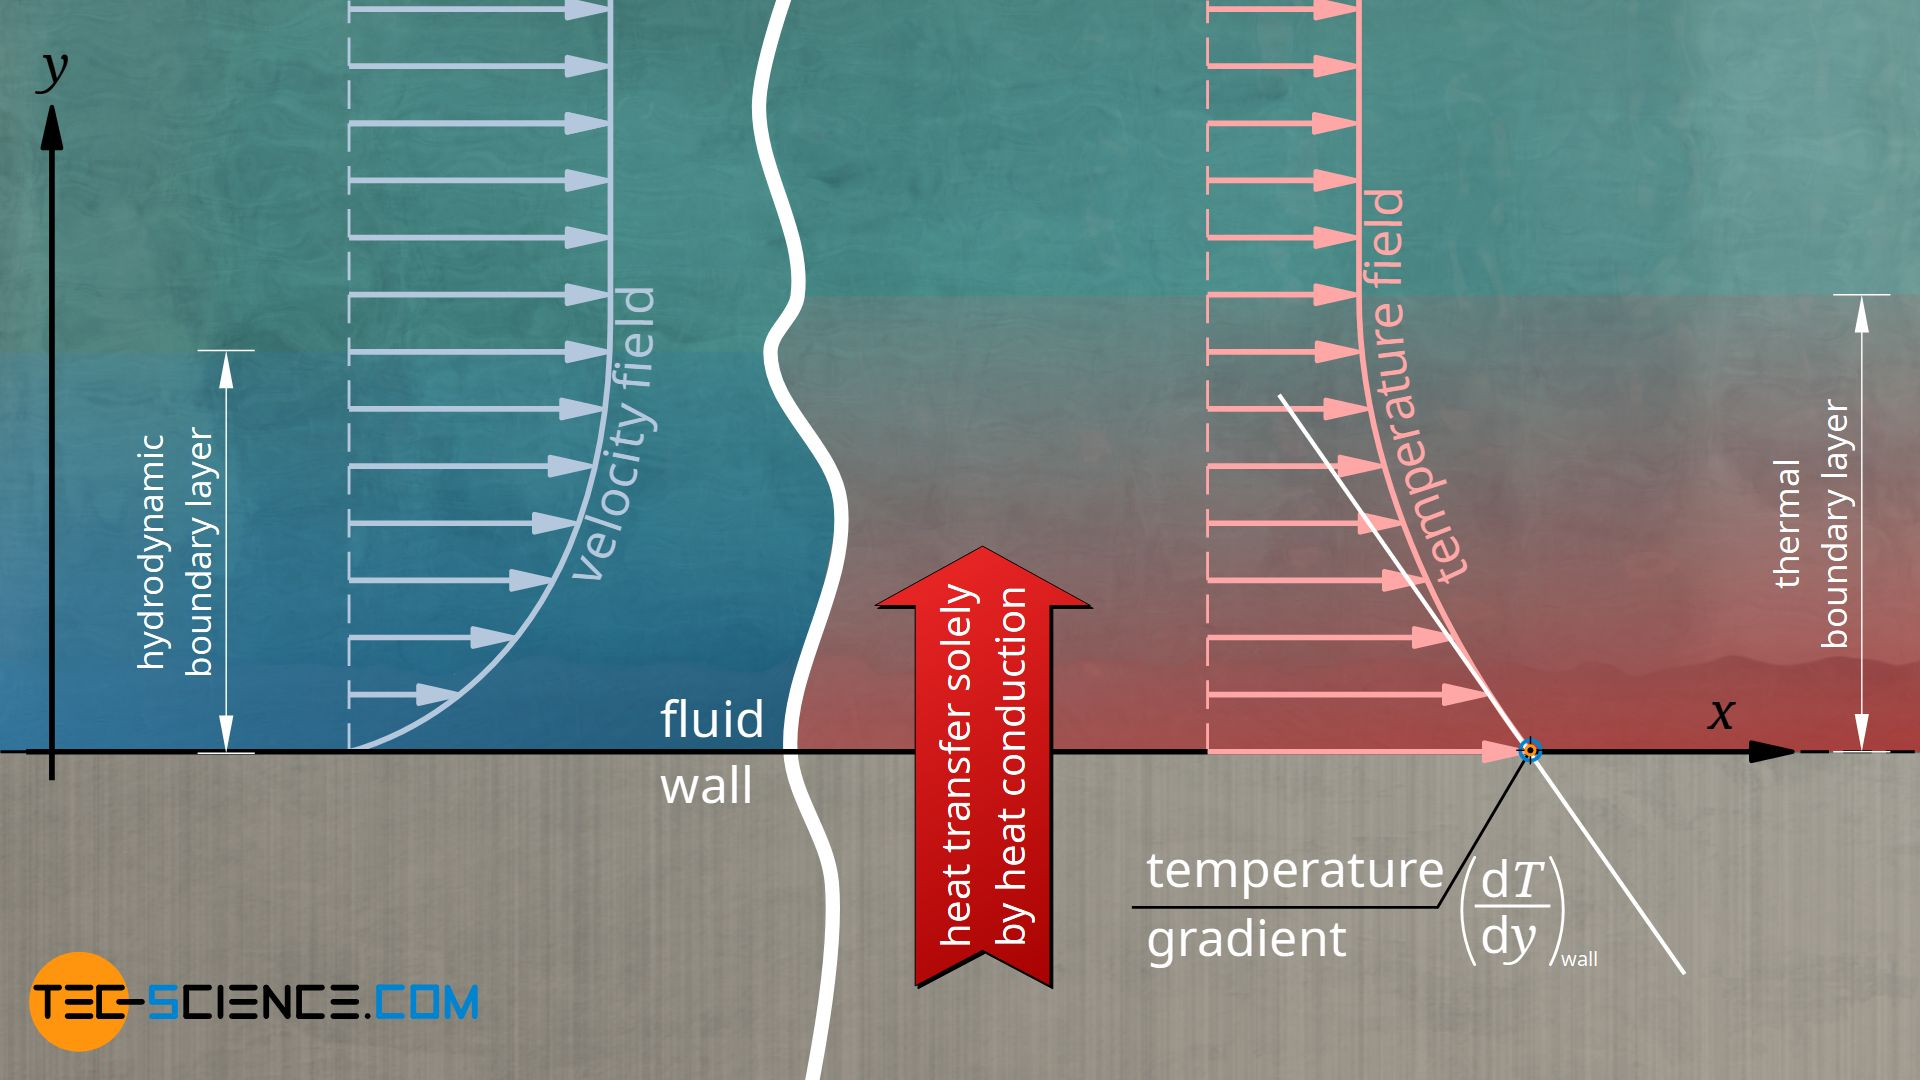 Influence of the hydrodynamic and thermal boundary layer on convective heat transfer